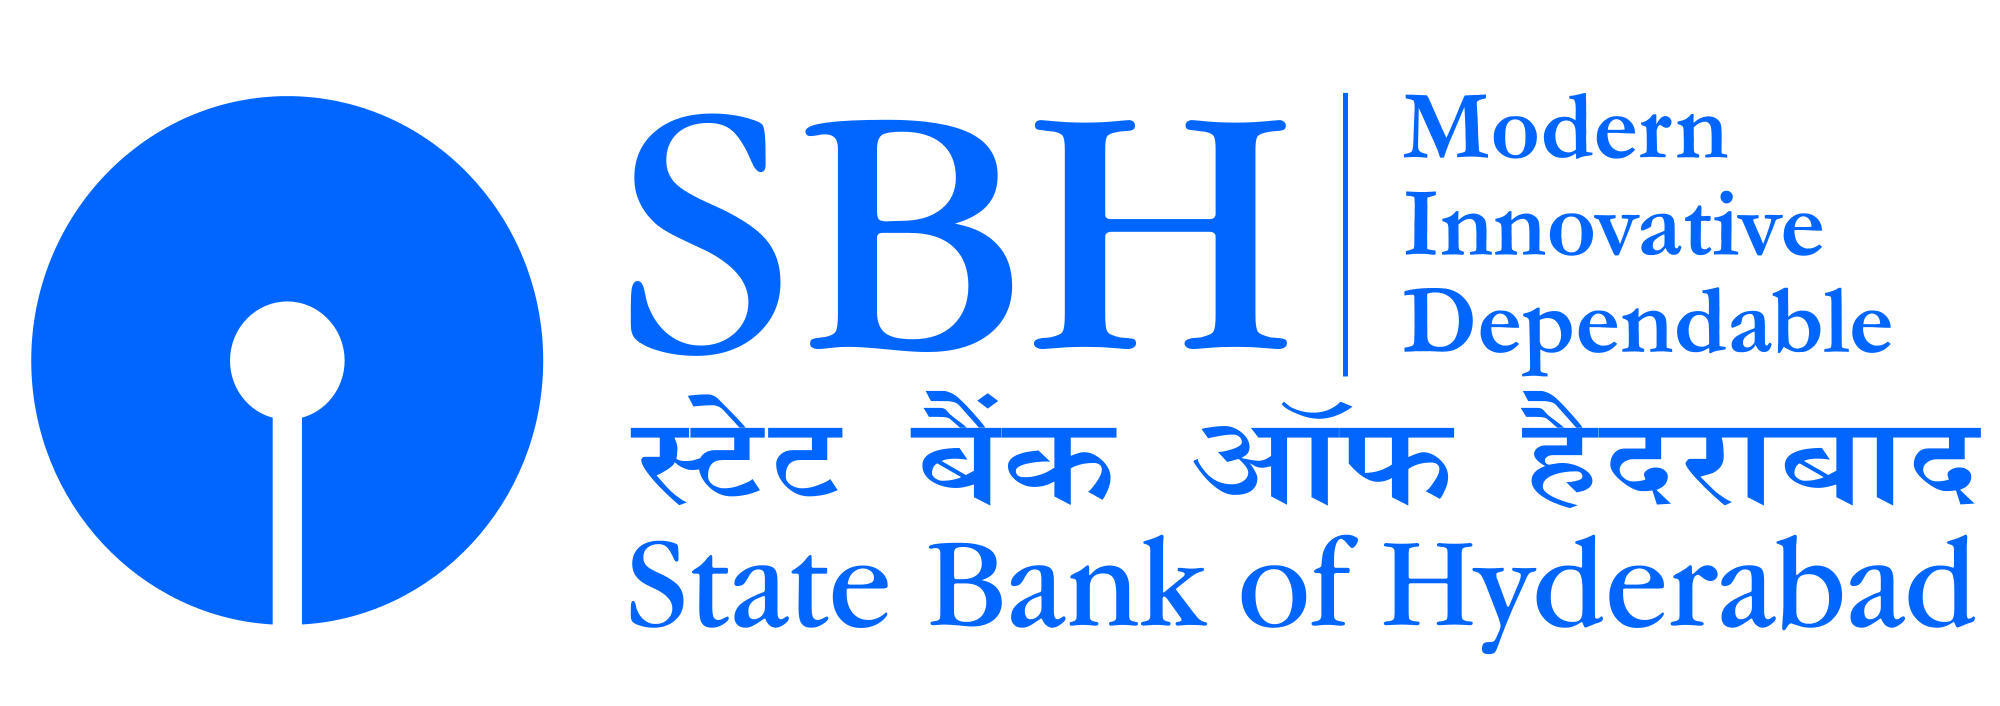 State_Bank_of_Hyderabad_phone number